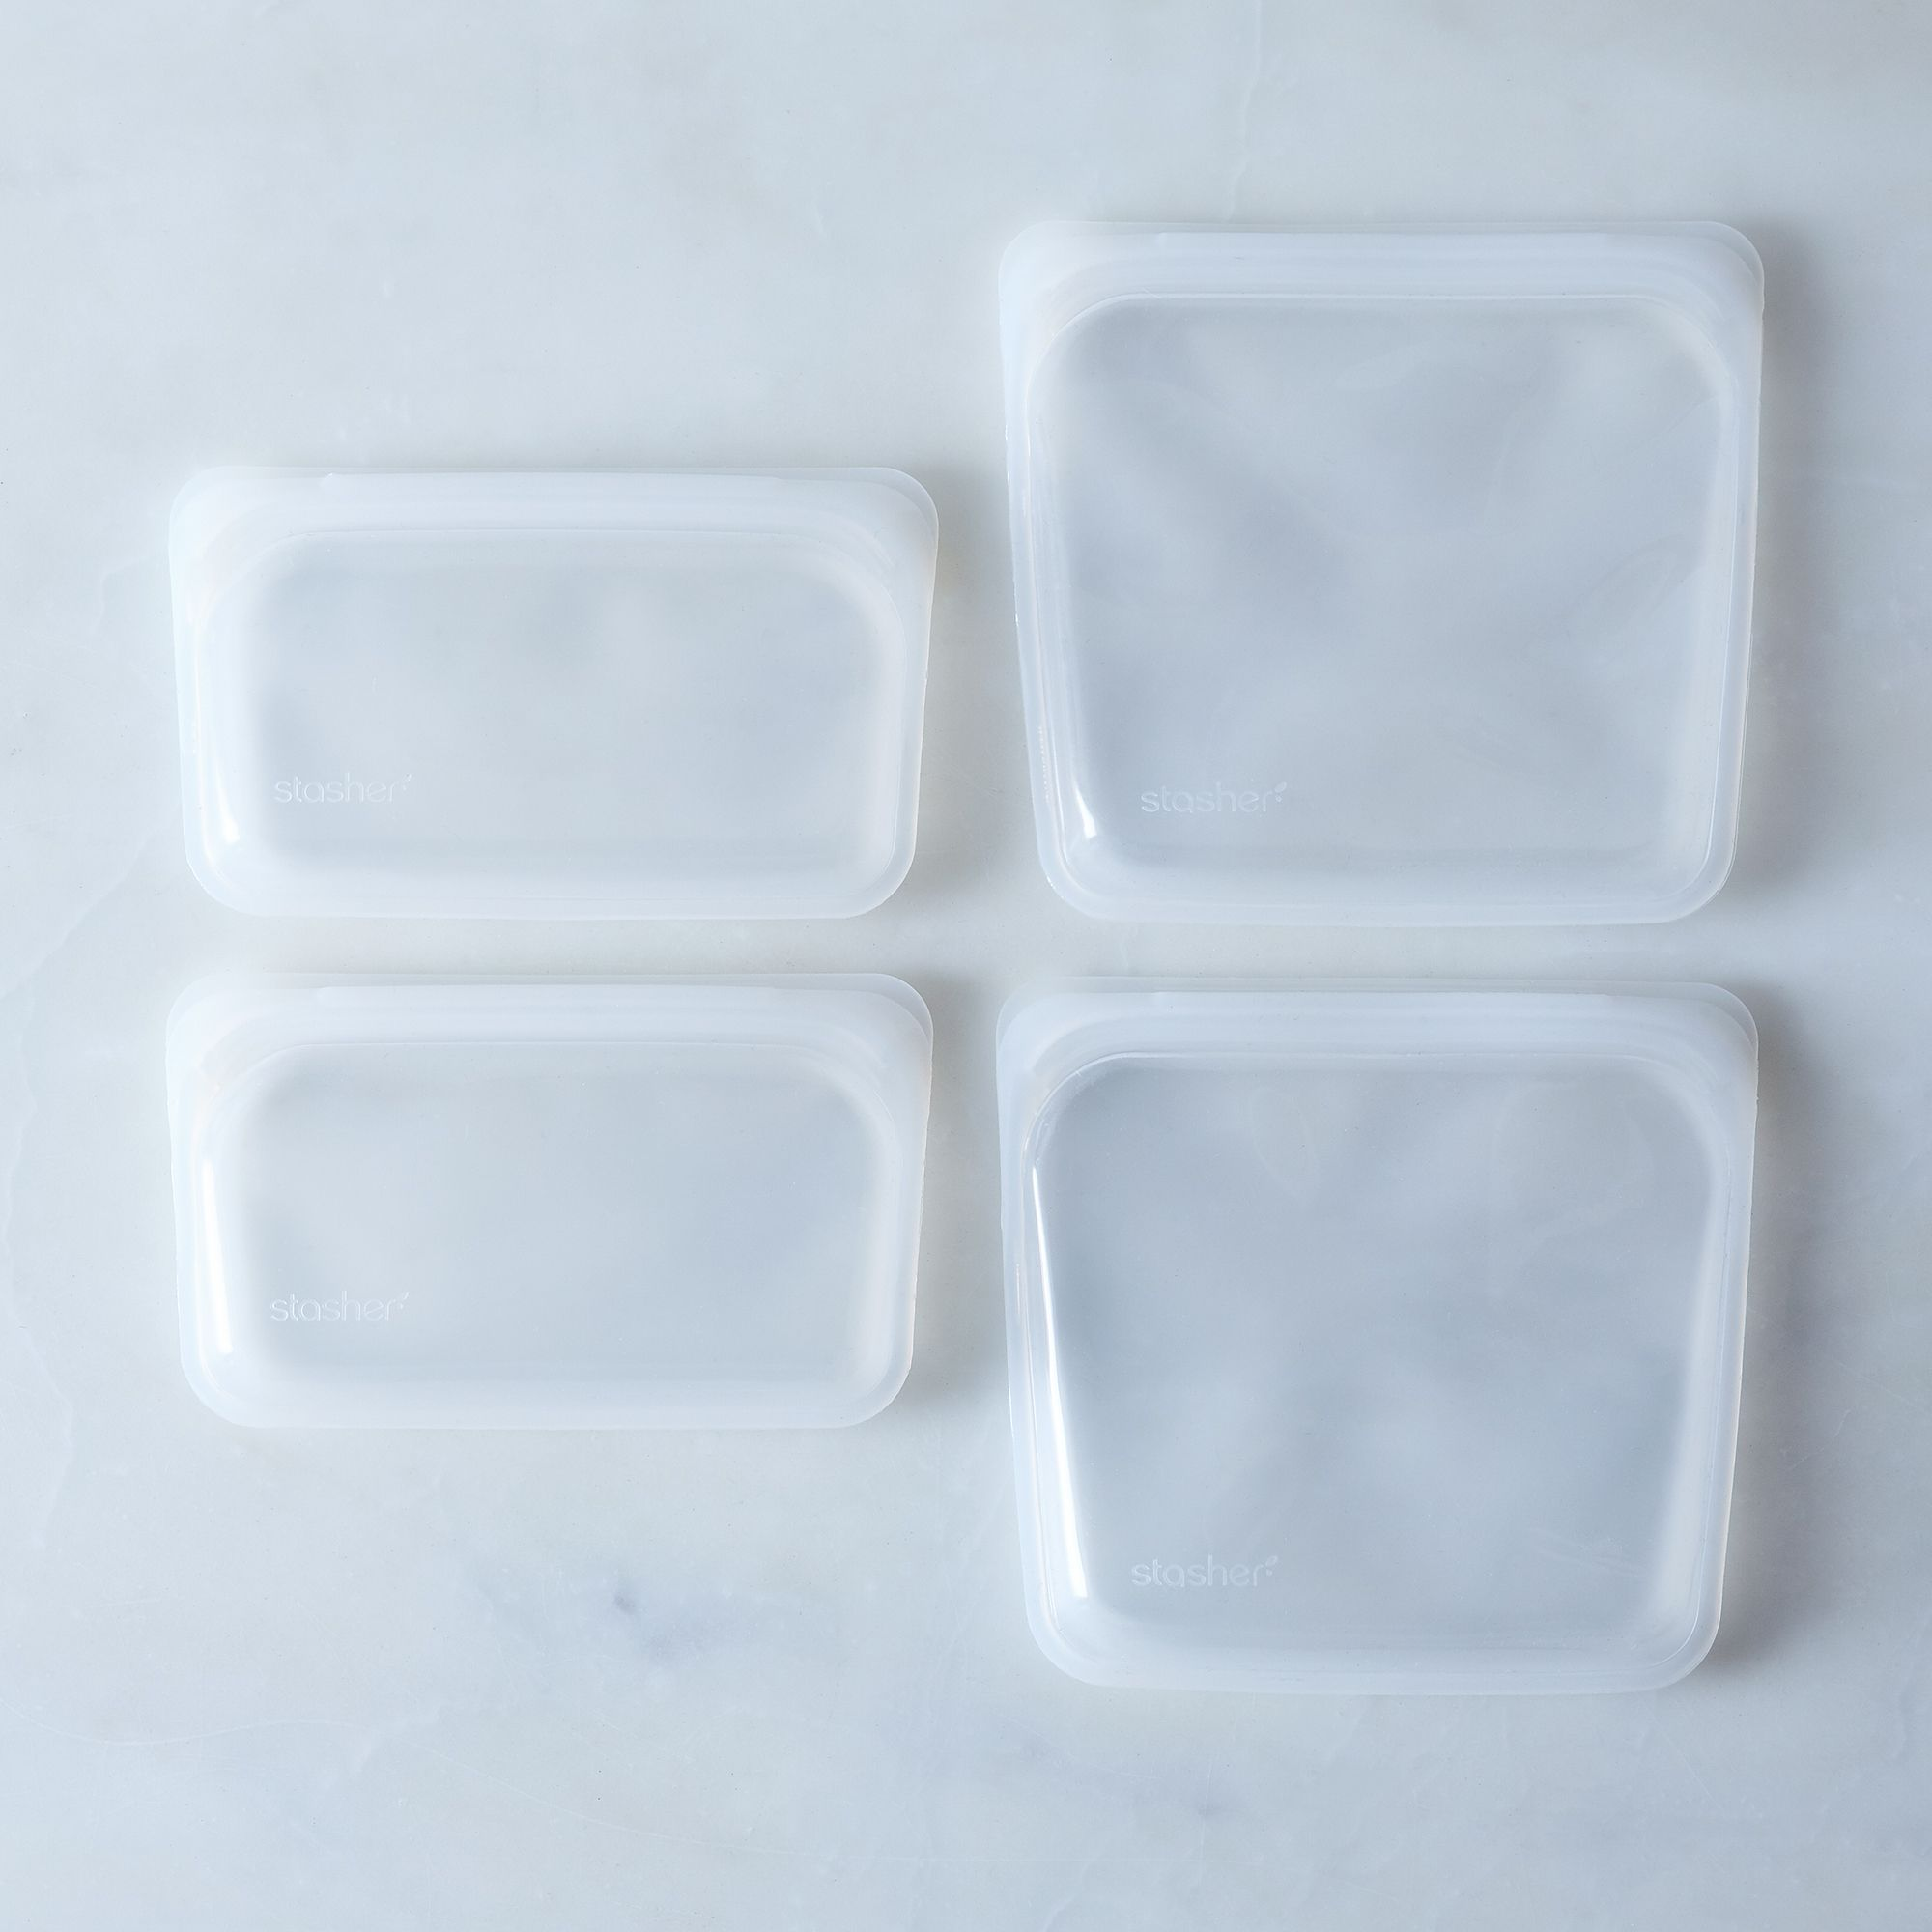 C021f726 1f3e 483c 8507 5737766839a2  2017 0404 stasher reusable snack bags clear combo set of 4 detail silo rocky luten 0390